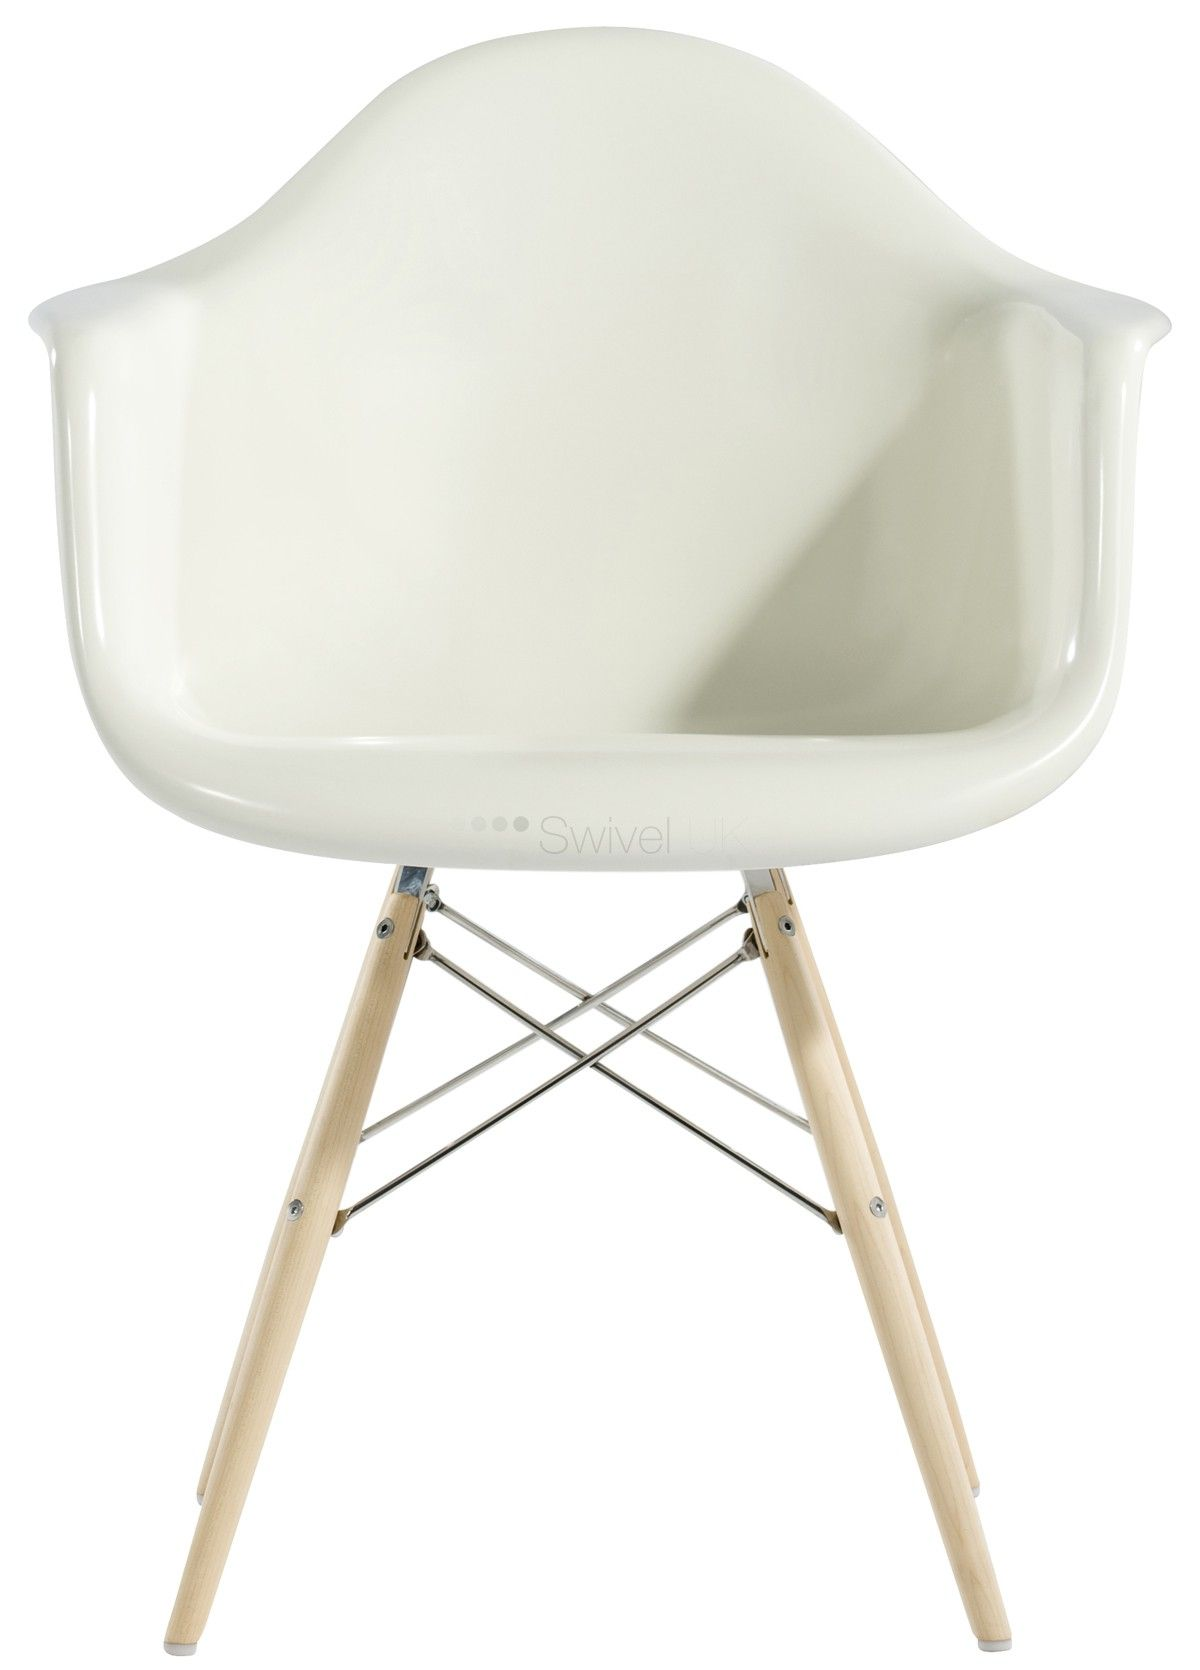 daw fibreglass chair decoration pinterest charles eames and